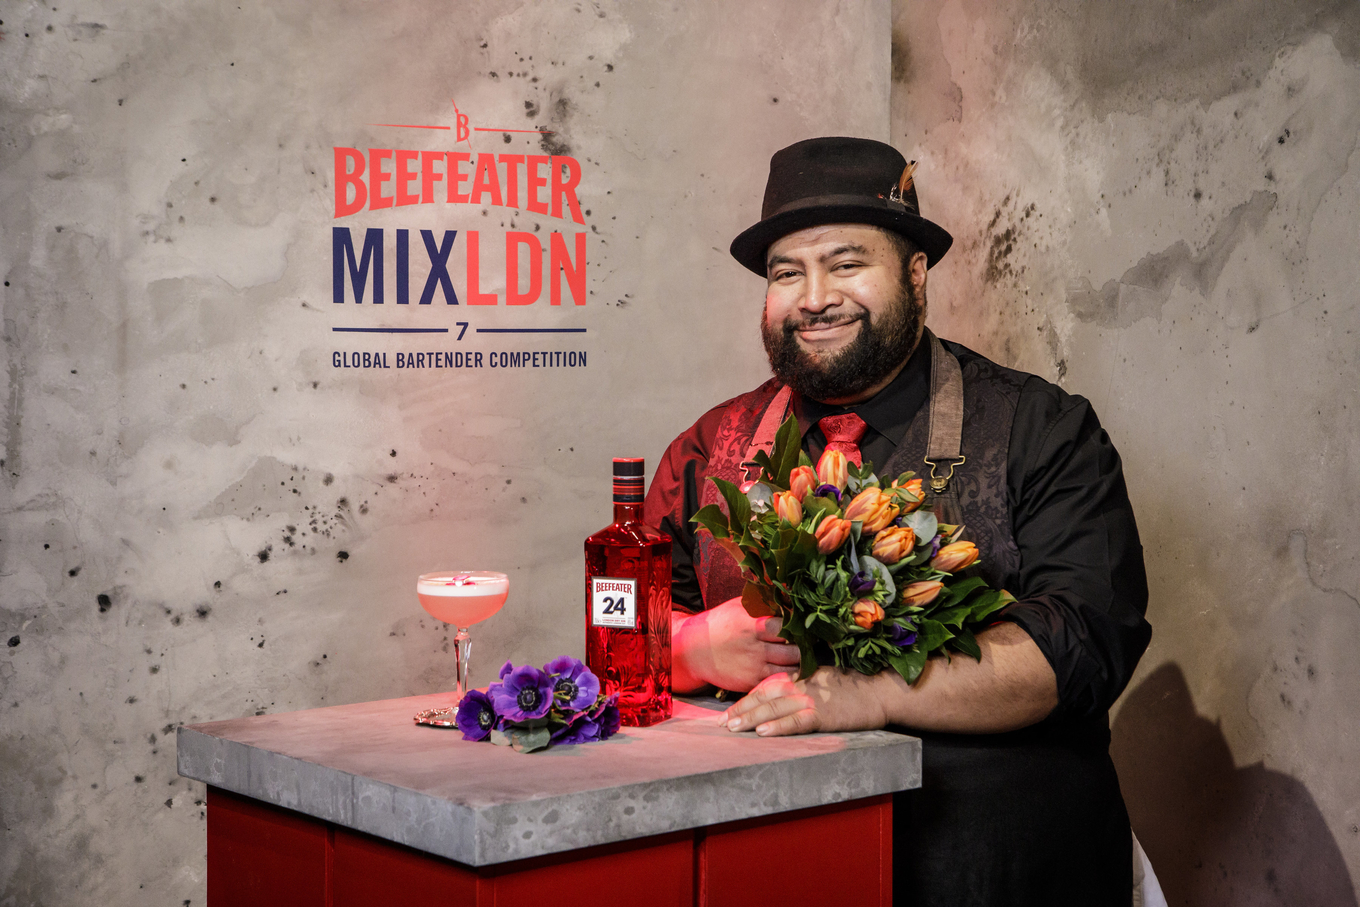 Beefeater MIXLDN - Charles Gillet image 1